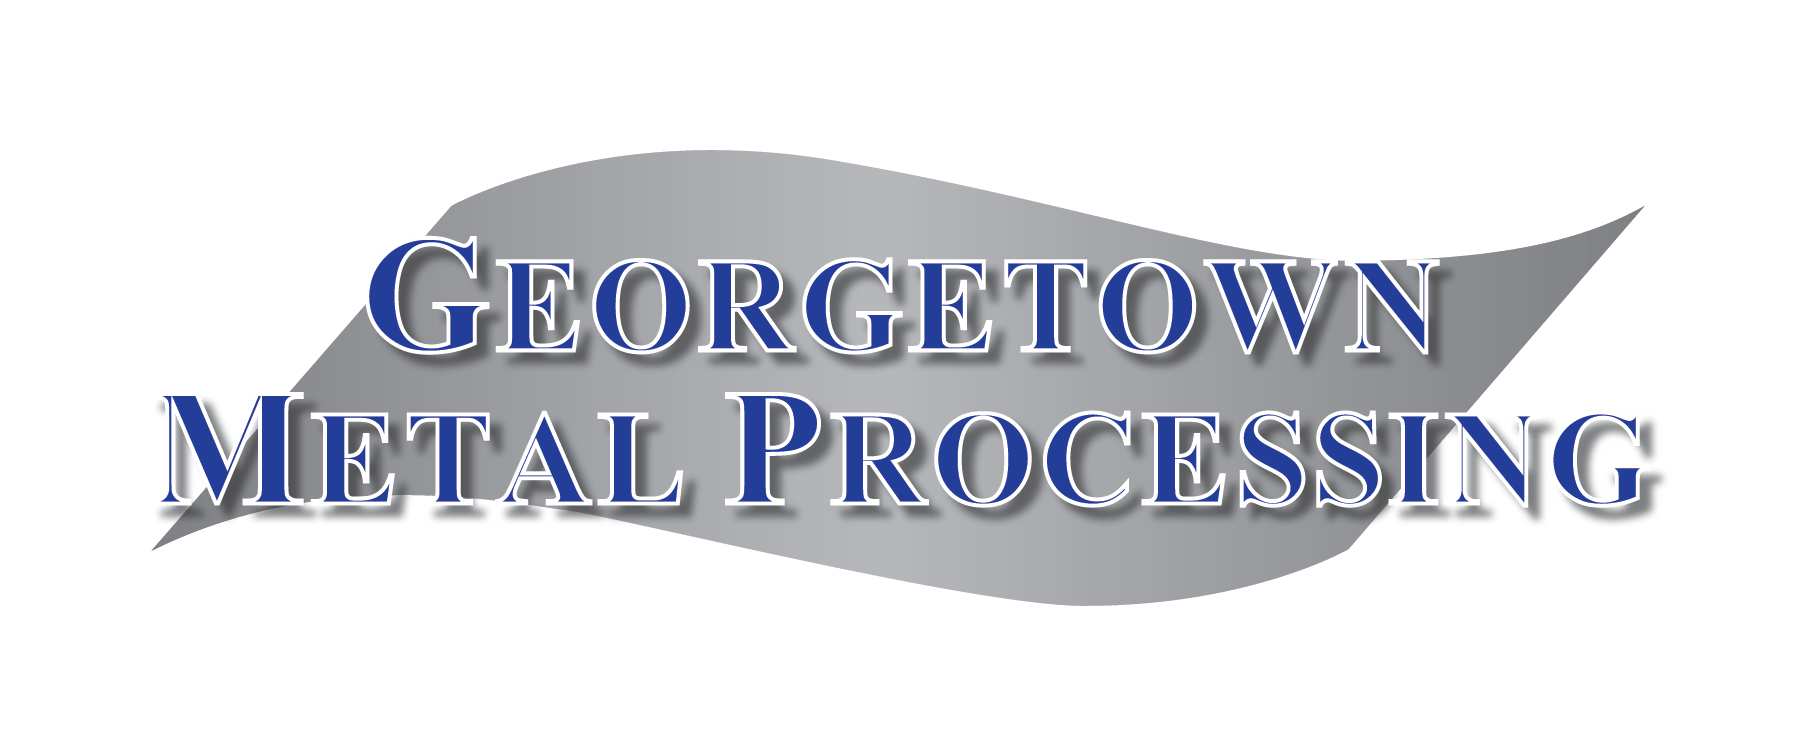 Georgetown metal processing